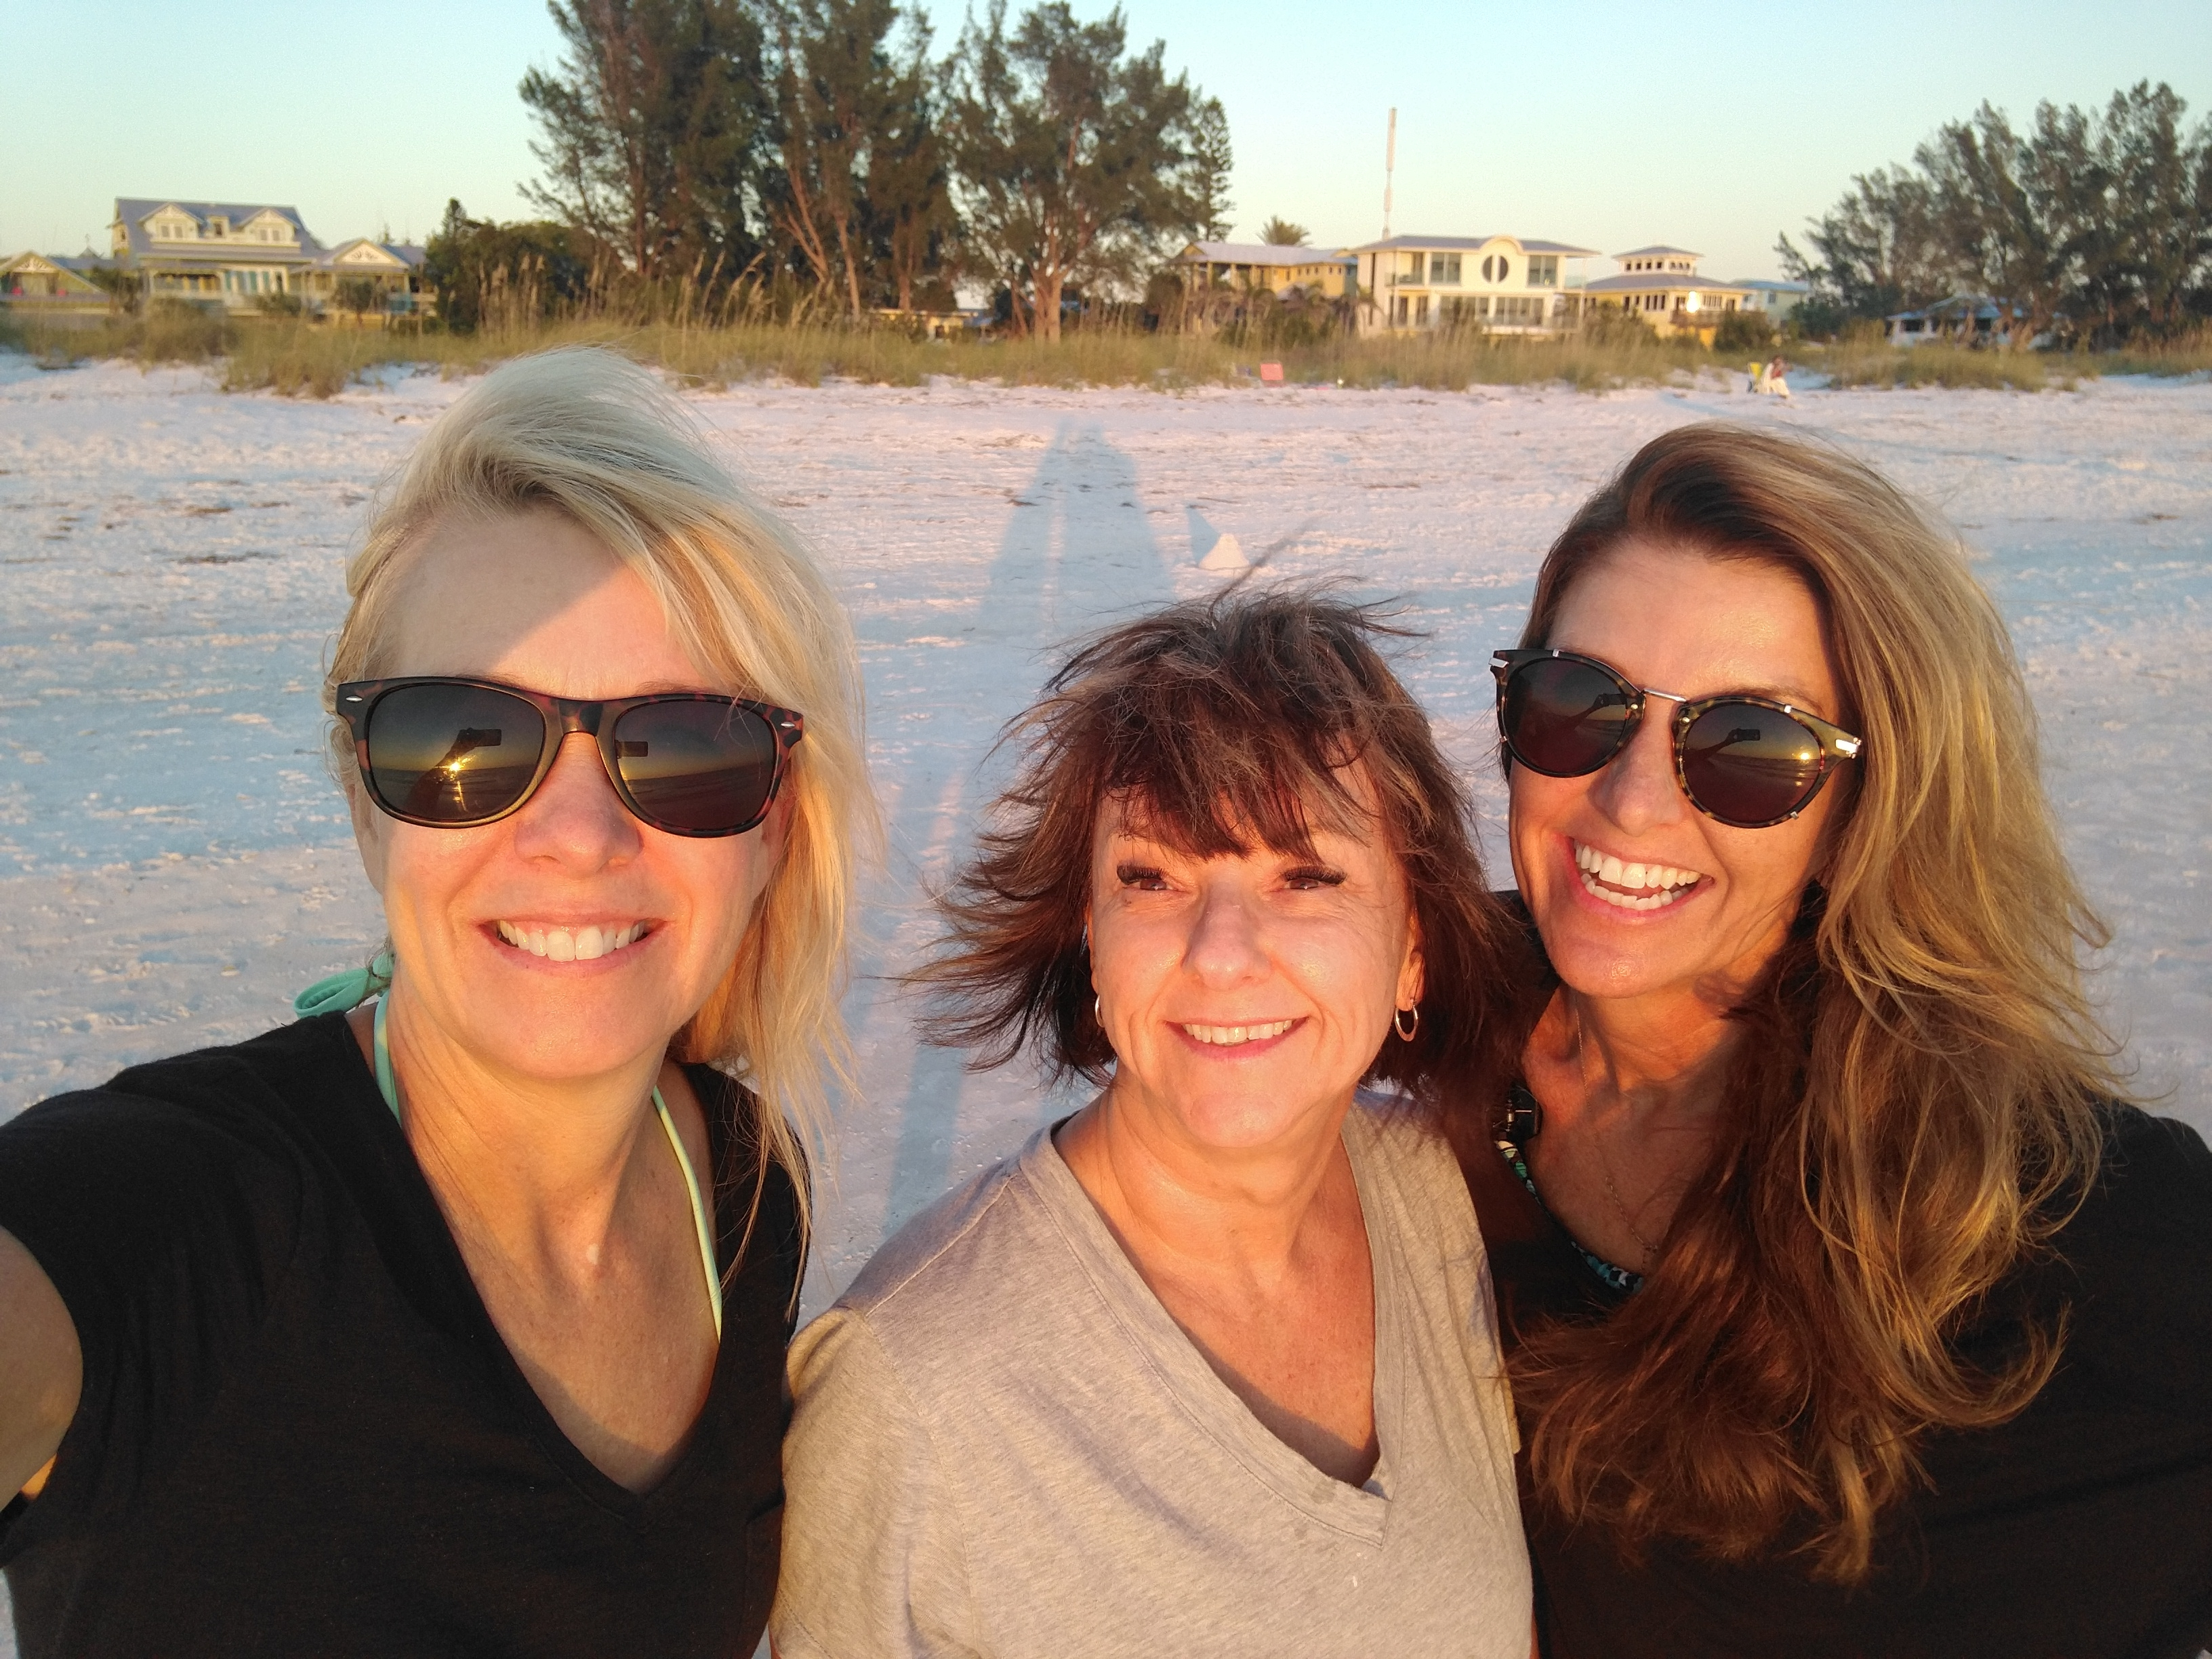 Three female friends with sunglasses smile on the beach of Anna Maria Island in Florida as the sun sets with sand in the background